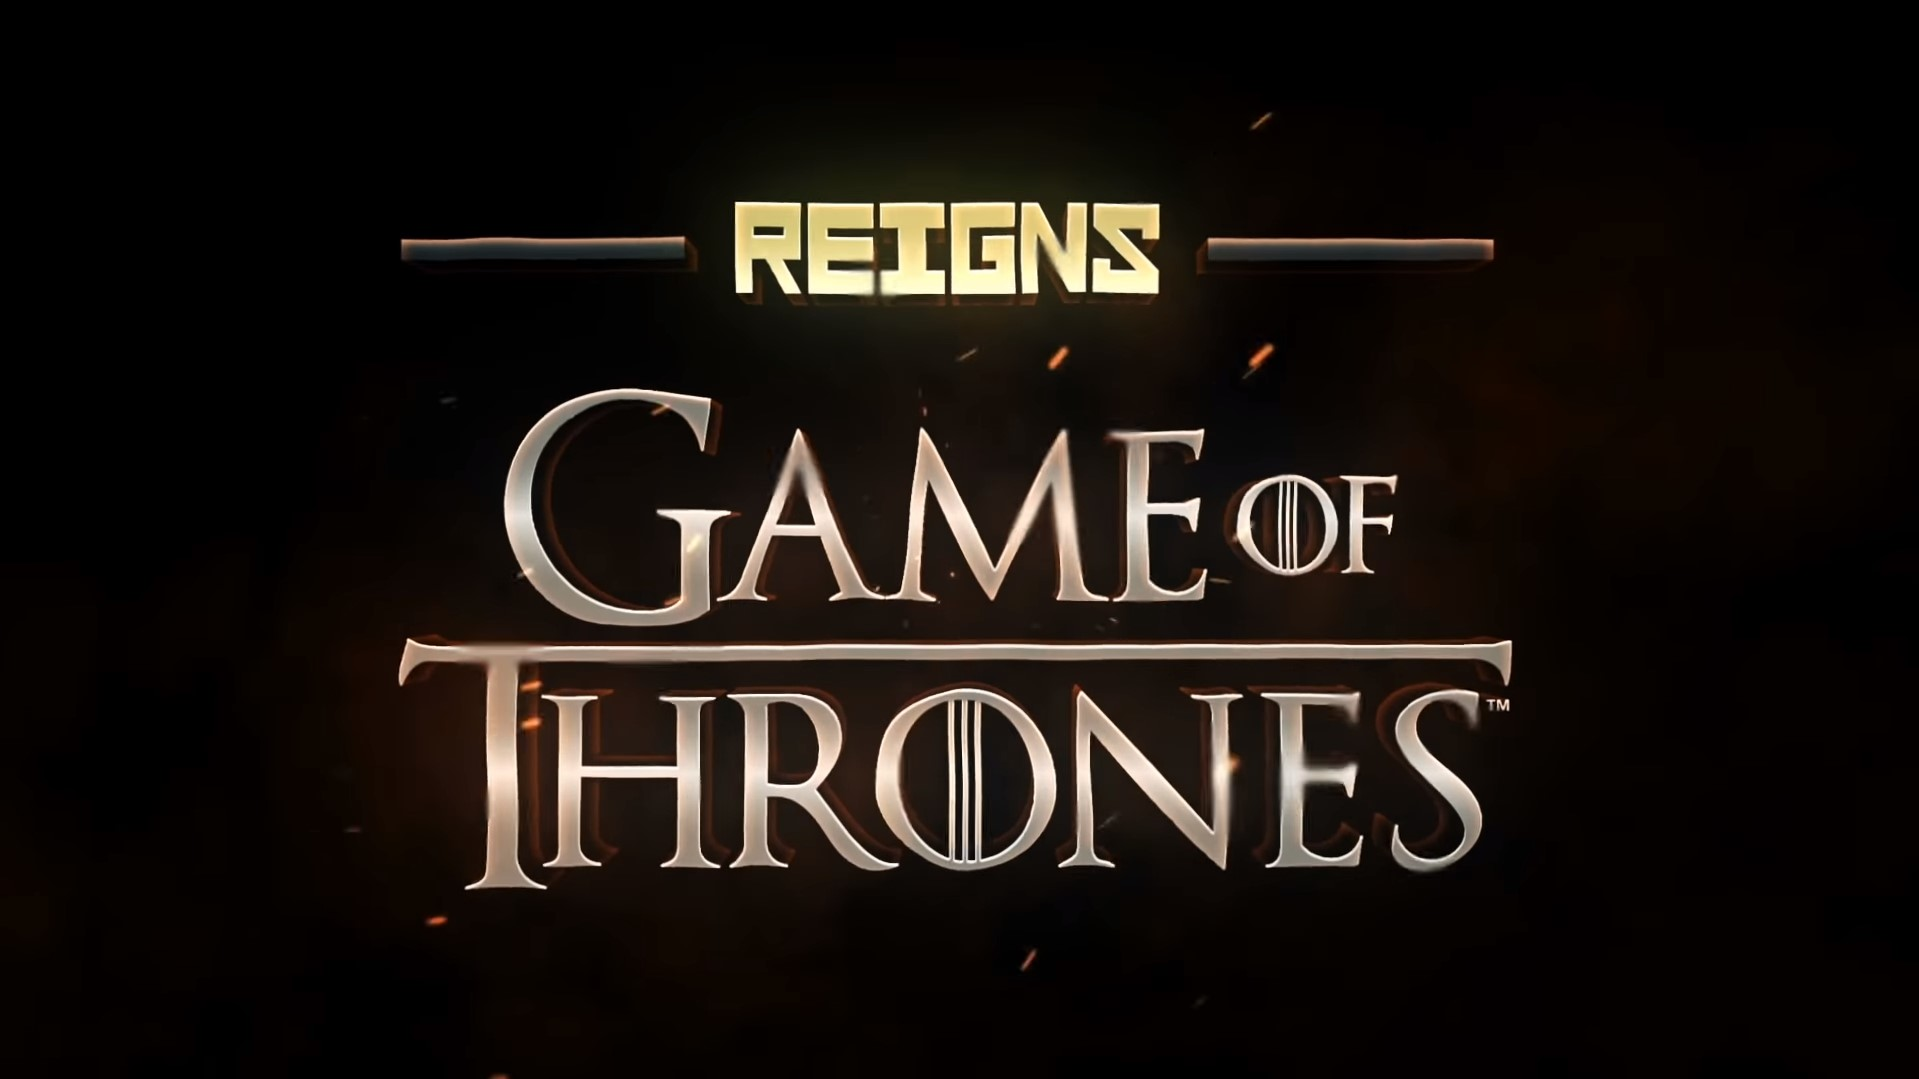 We loved Reigns: Game of Thrones but what did YOU think?